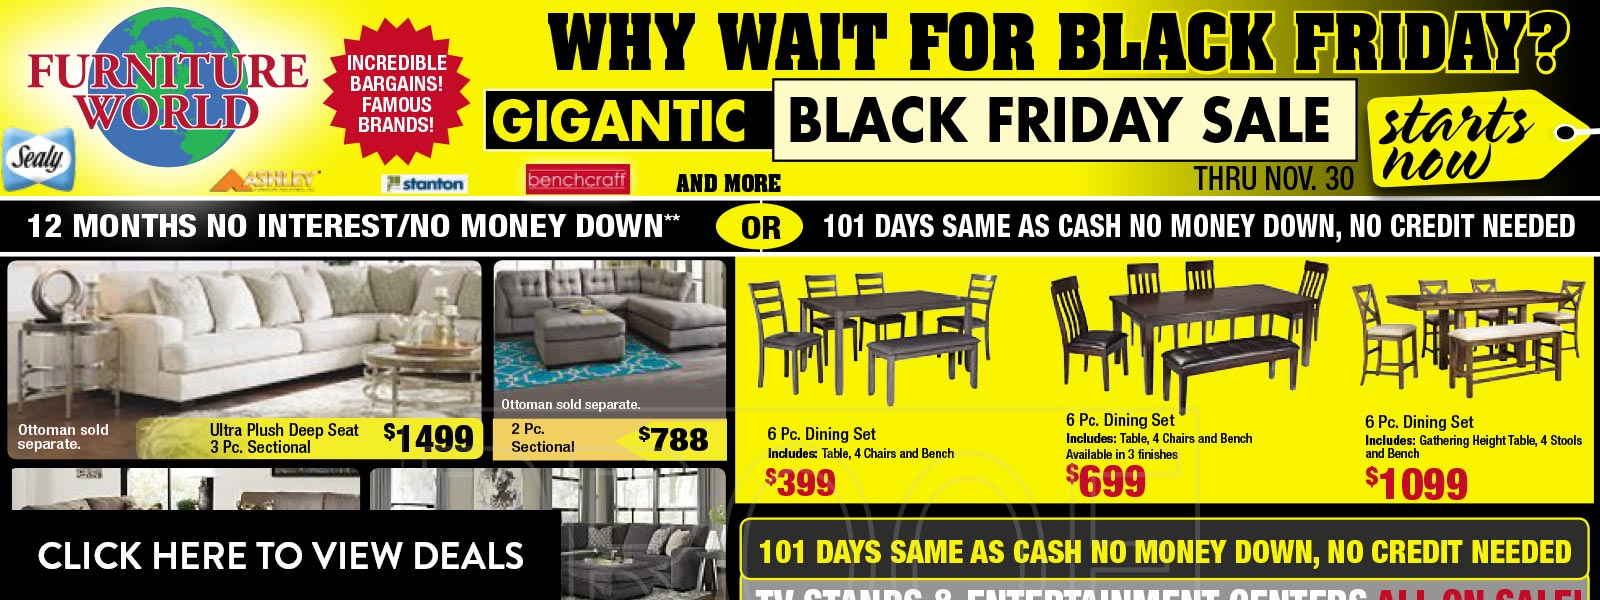 Current Ad - Black Friday Savings